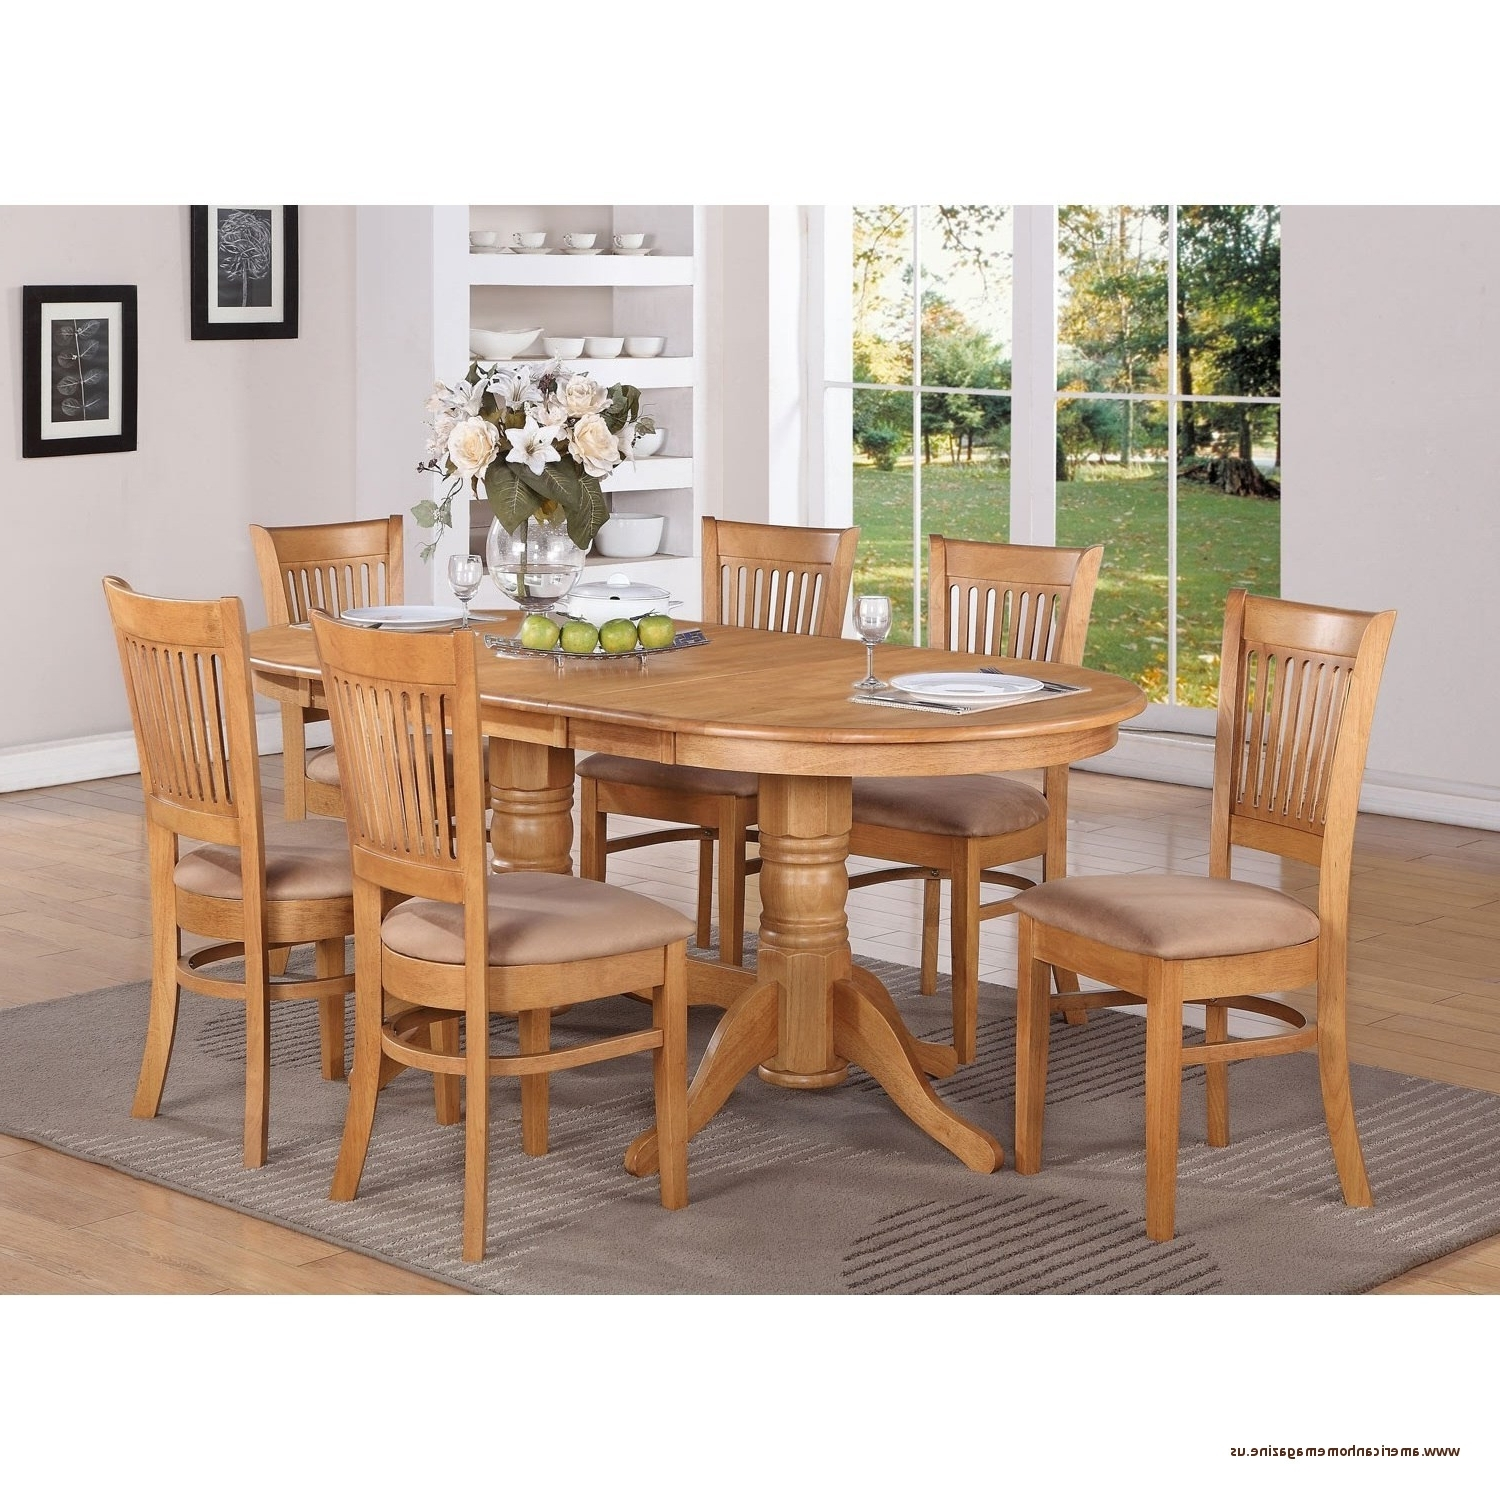 6 Dining Room Chairs Ebay Modern Upholstered Dining Chairs Simple for Well-known Dining Chairs Ebay